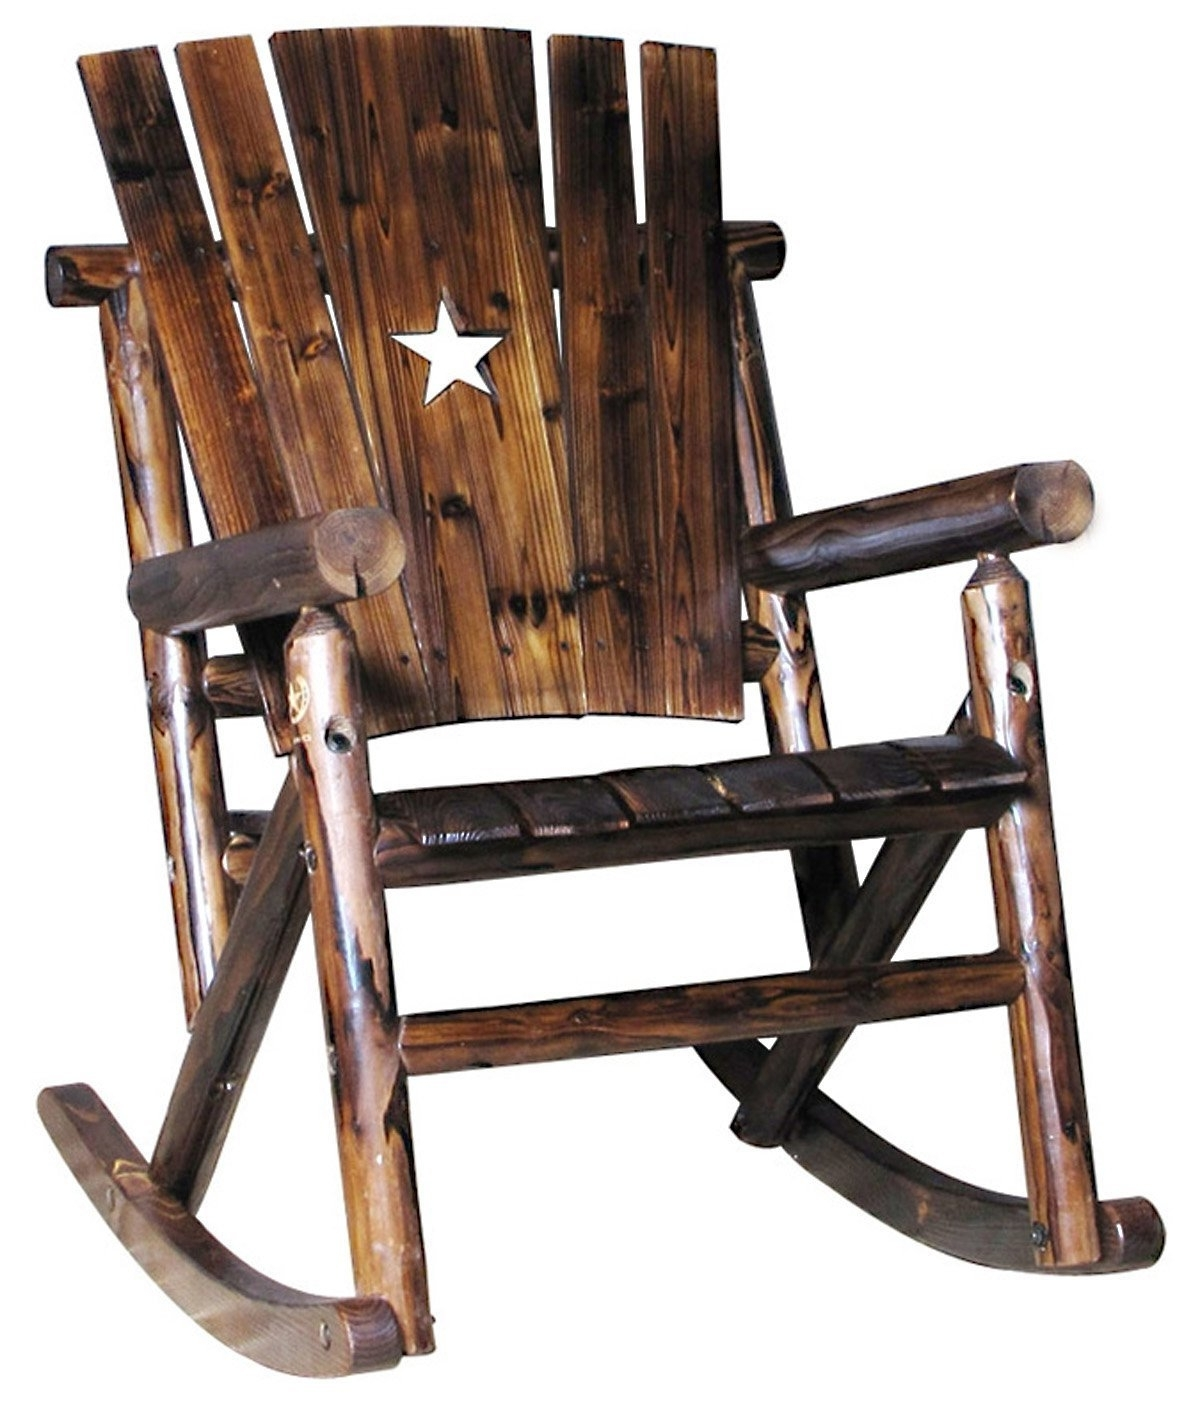 2019 Rocking Chairs At Kroger For 3 Best Rustic Rocking Chairs Available In The Market – Nursery Gliderz (View 2 of 20)